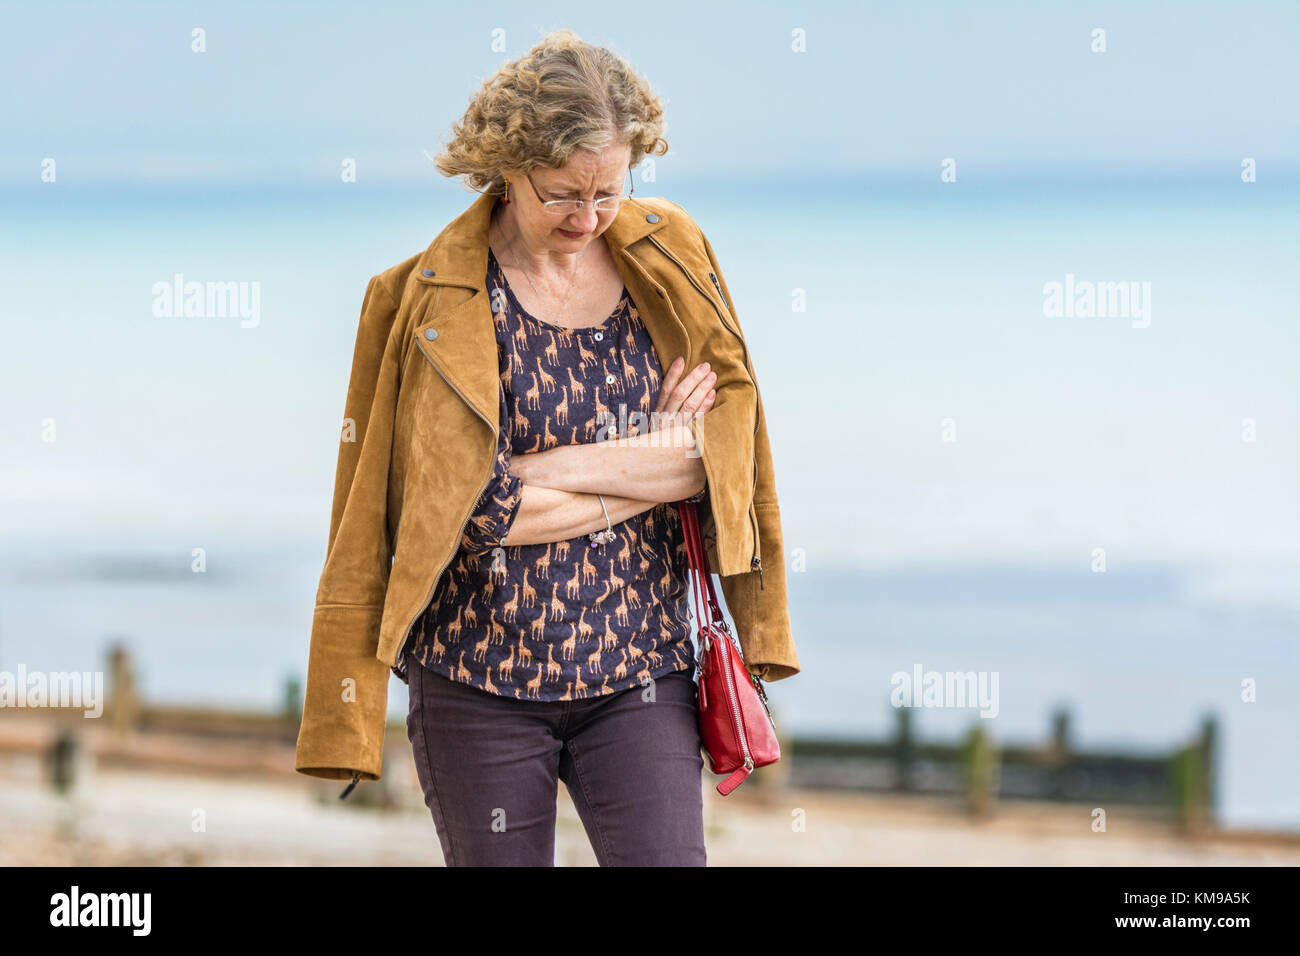 Woman walking with her arms folded, looking deep in thought and in a world of her own. - Stock Image